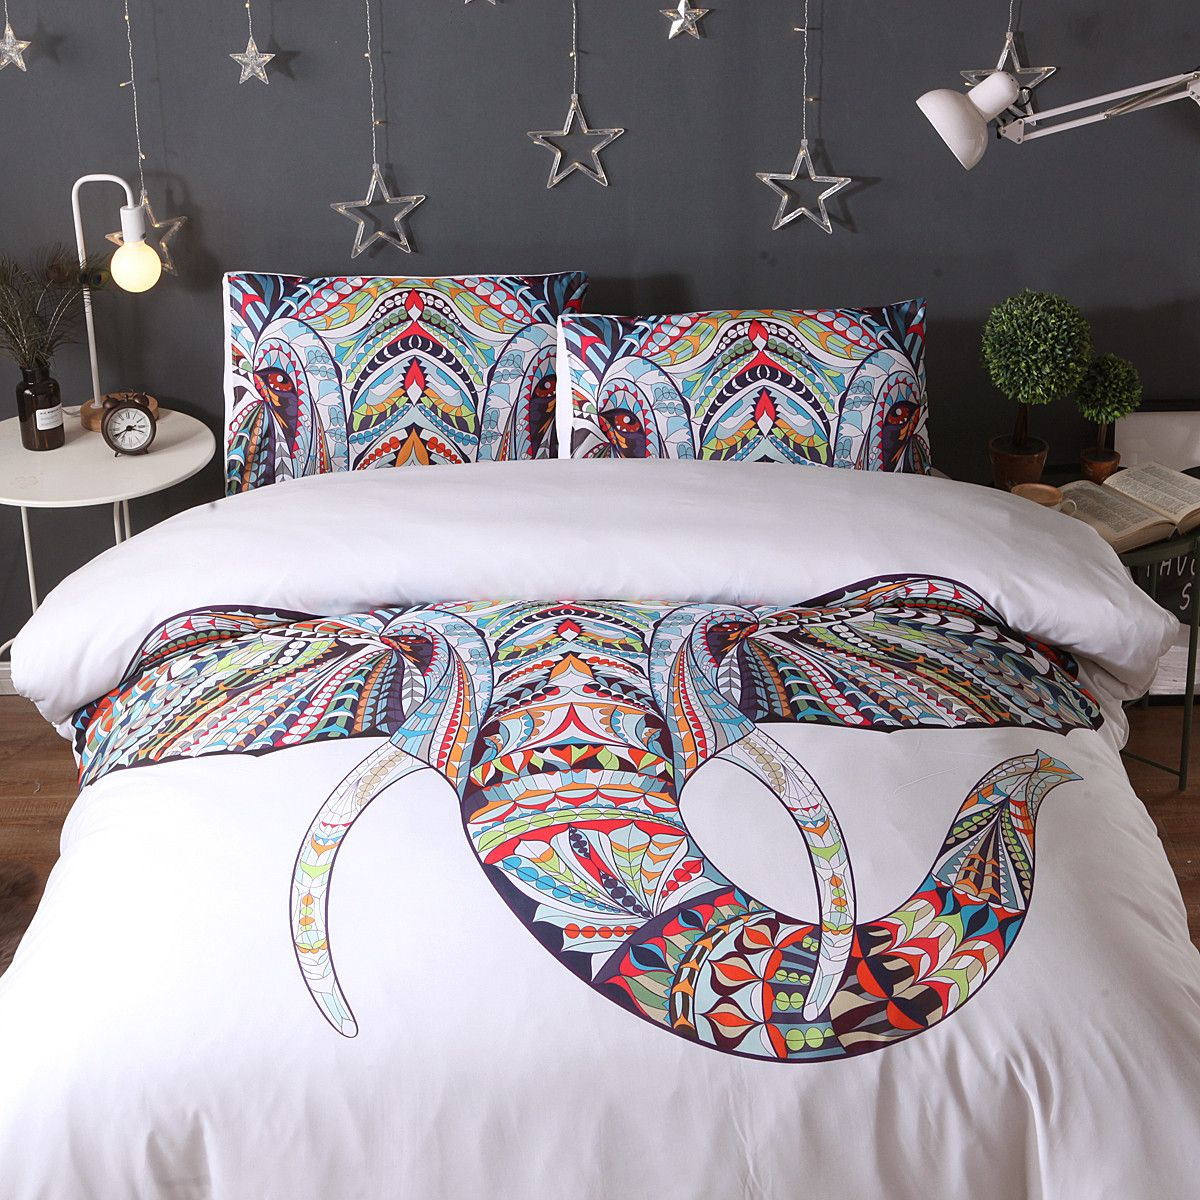 home d cor diy Tribal Elephant Bedding Set 3pcs duvet cover and pillow case  Indian God Ganesha 200 200  228   228   230 260 Outlets    AliExpress. home d cor diy Tribal Elephant Bedding Set 3pcs duvet cover and